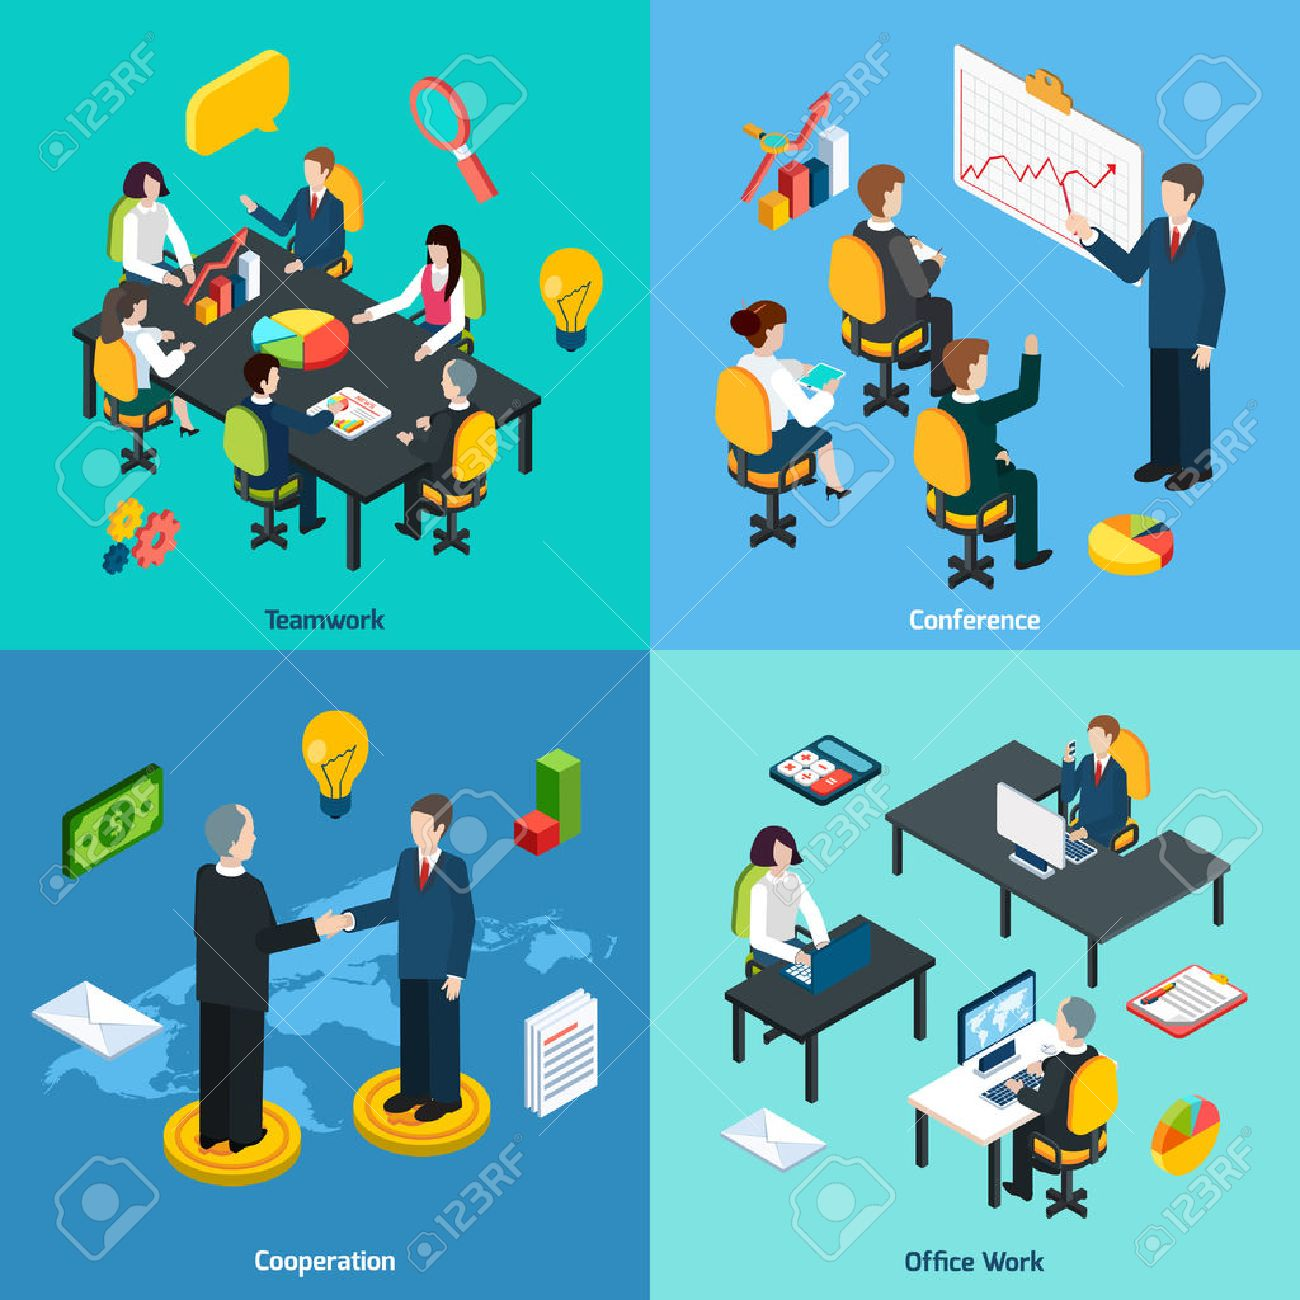 cooperation stock photos images royalty cooperation images cooperation business teamwork innovative ideas sharing conference and collaboration concept 4 isometric icons composition abstract